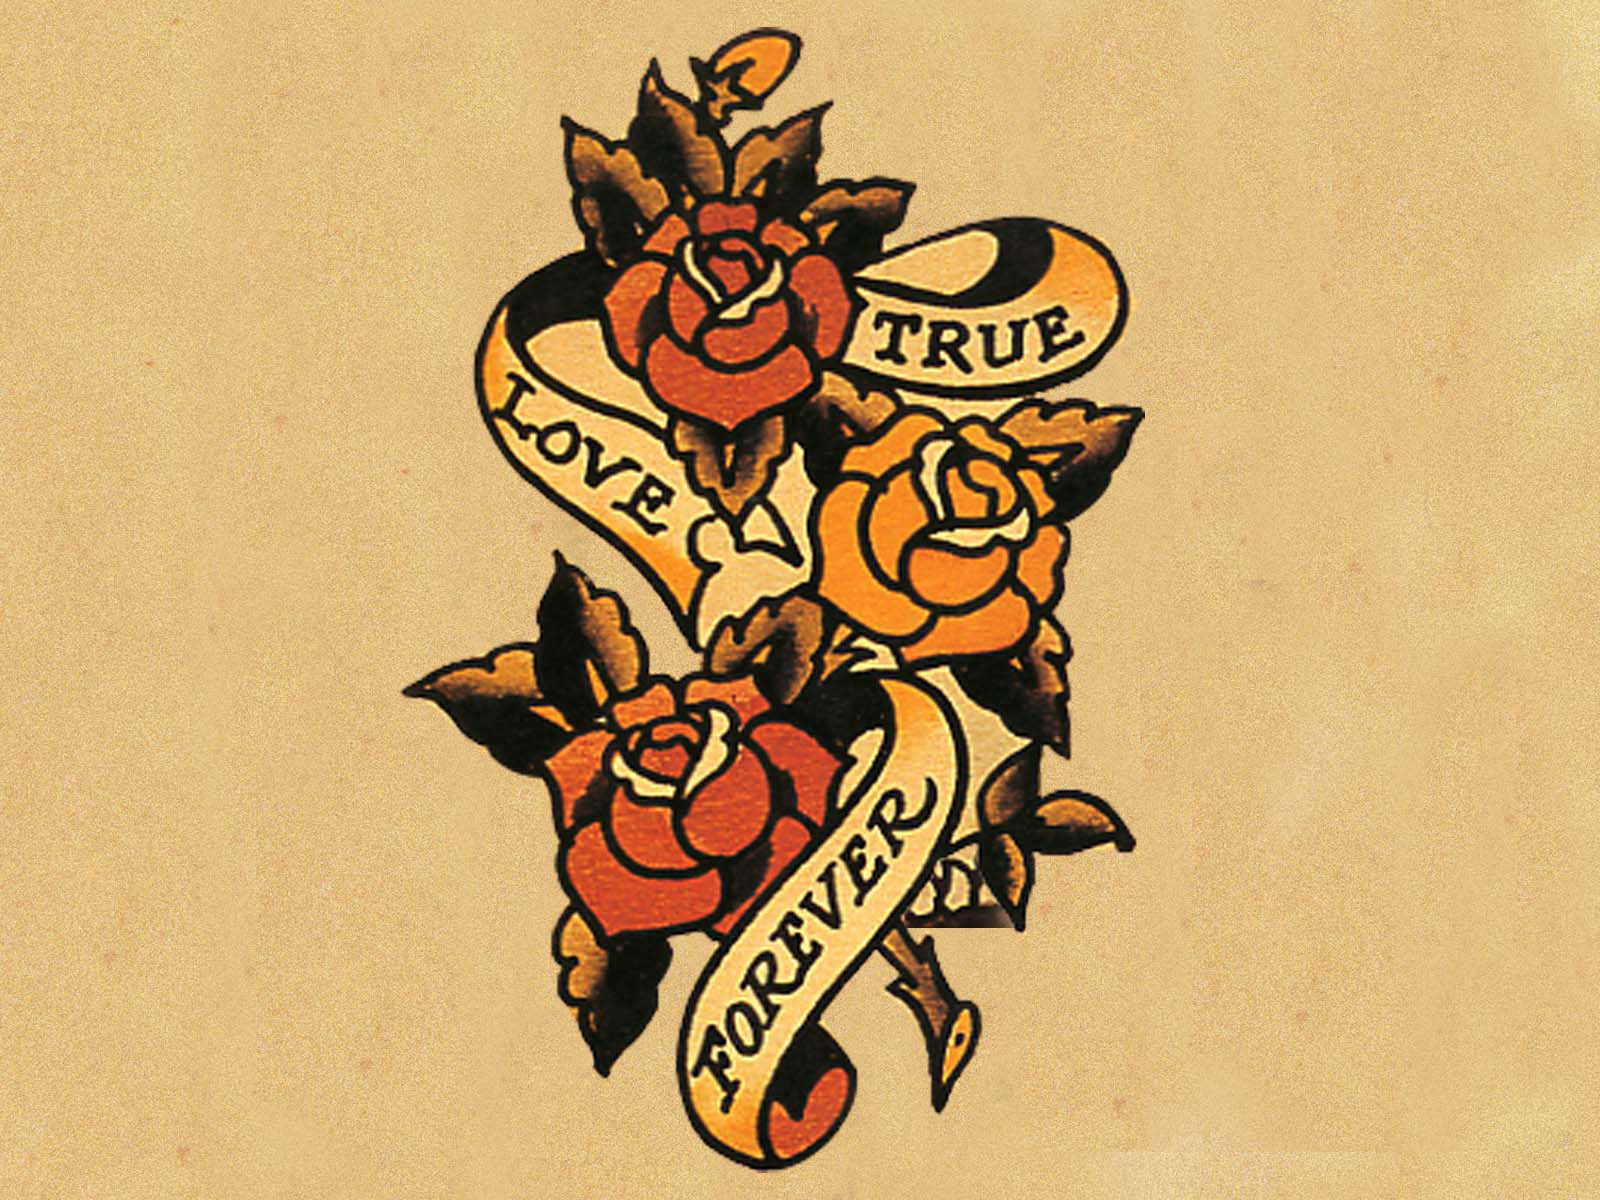 Trust Quotes Hd Wallpaper Download Sailor Jerry Tattoo Wallpaper Gallery